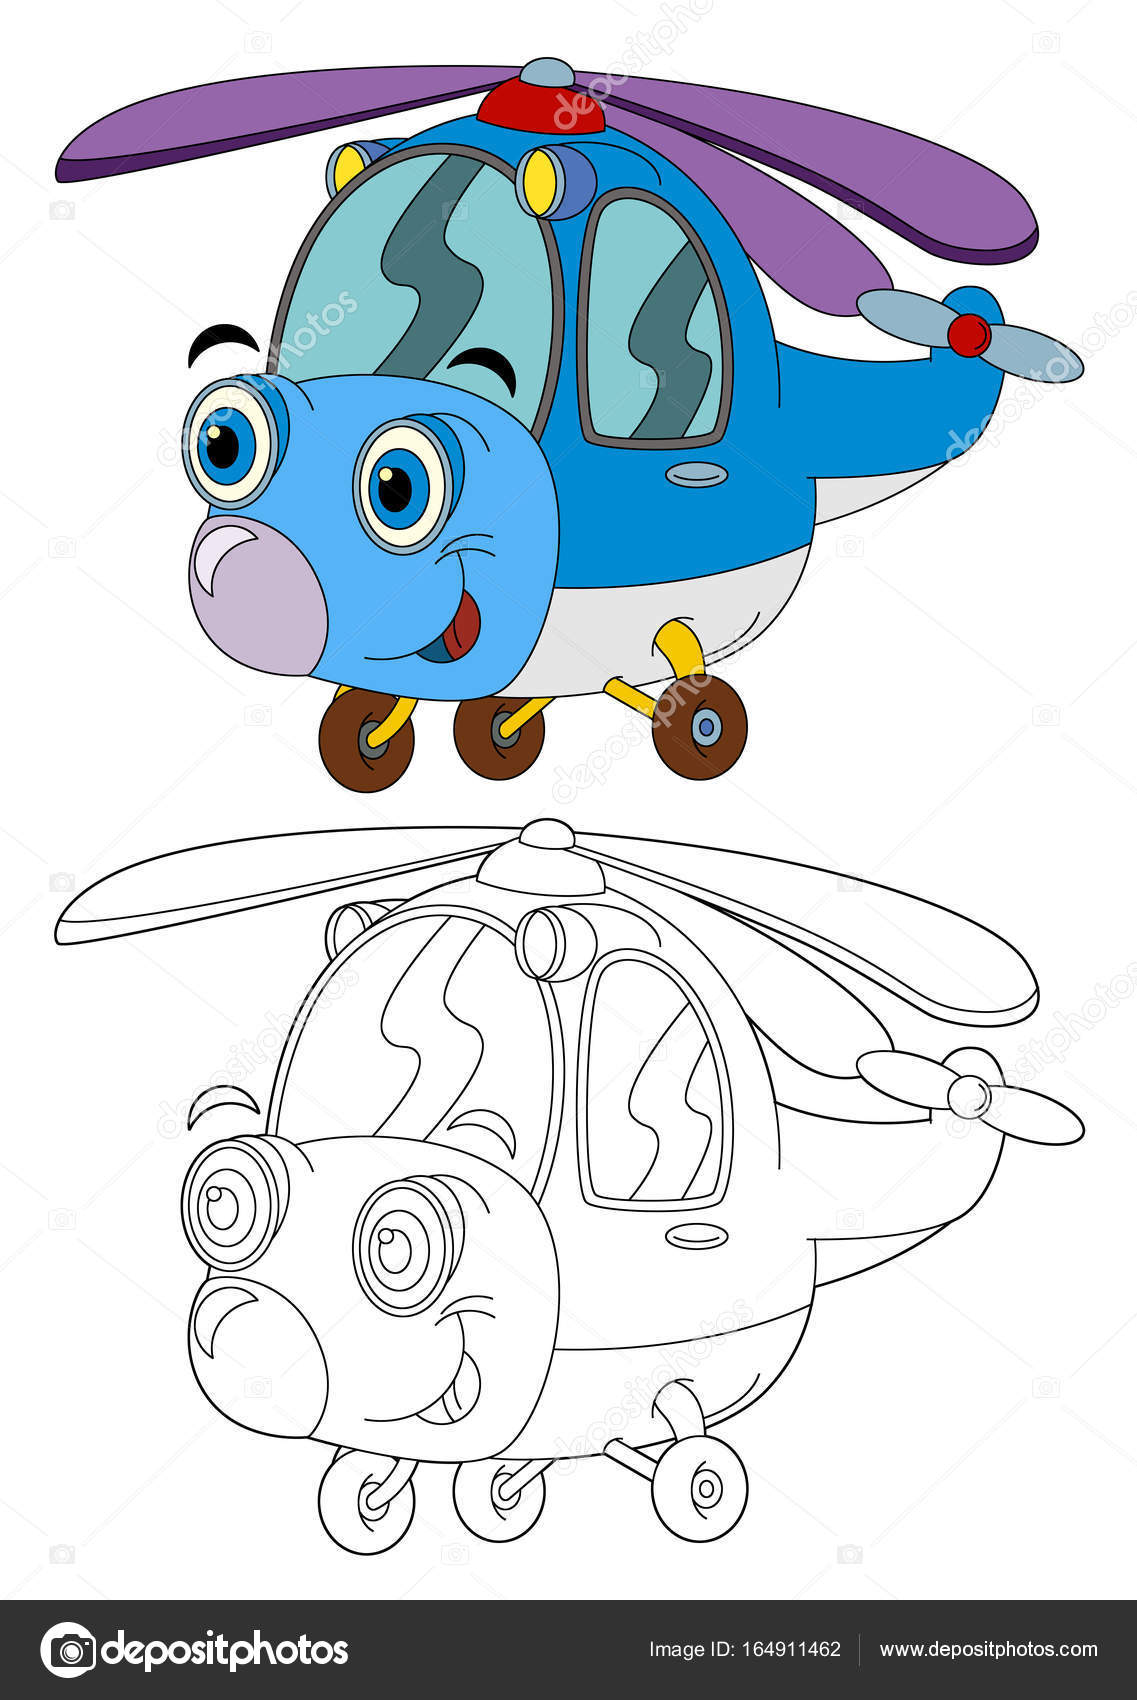 Cartoon Hubschrauber - isolierte Malvorlagen — Stockfoto ...